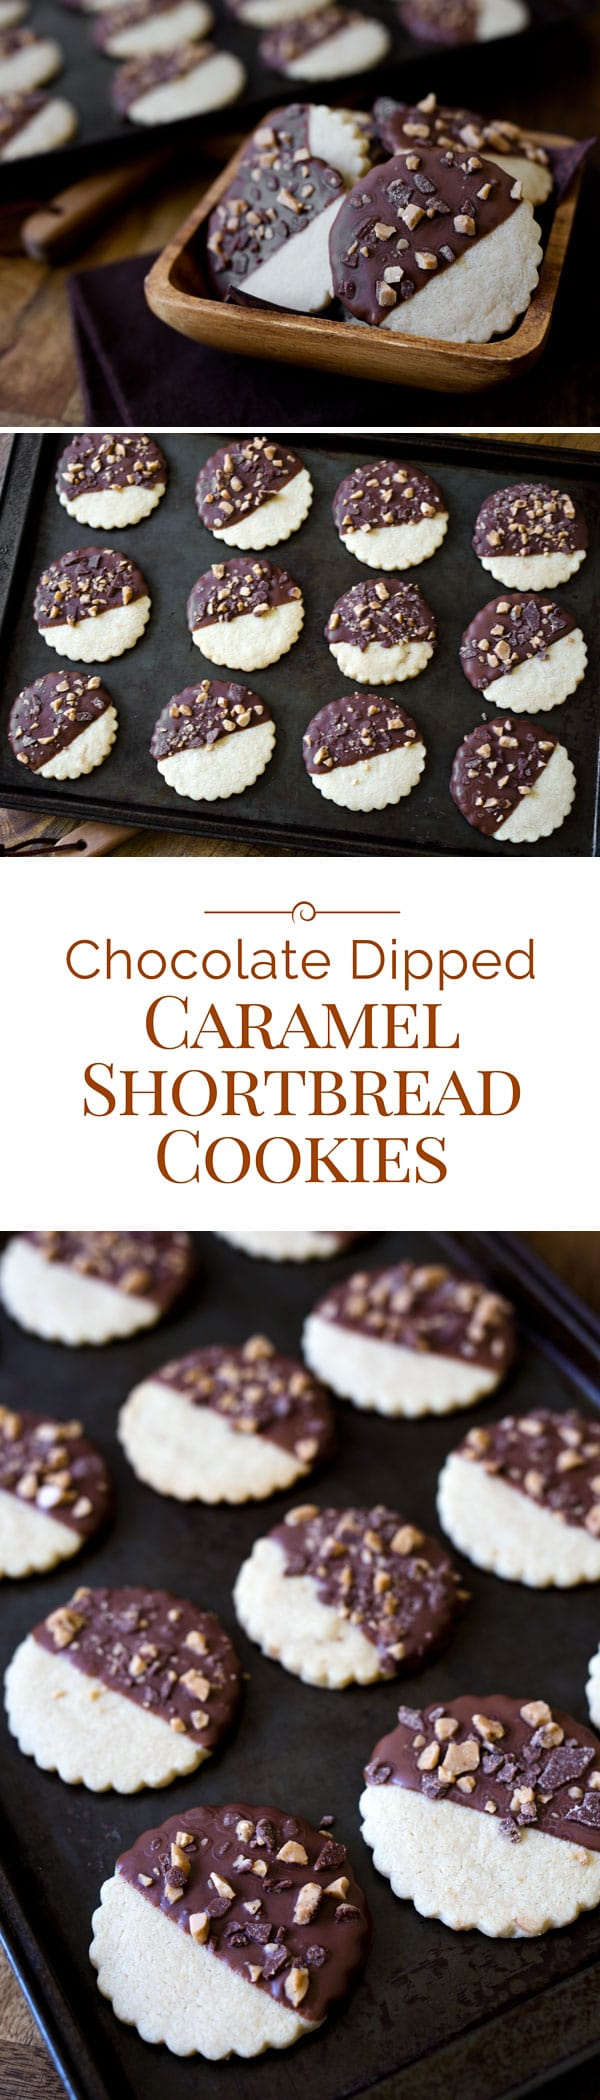 Tweed Cakes (Shortbread With Chocolate Covered Toffee) Recipes ...